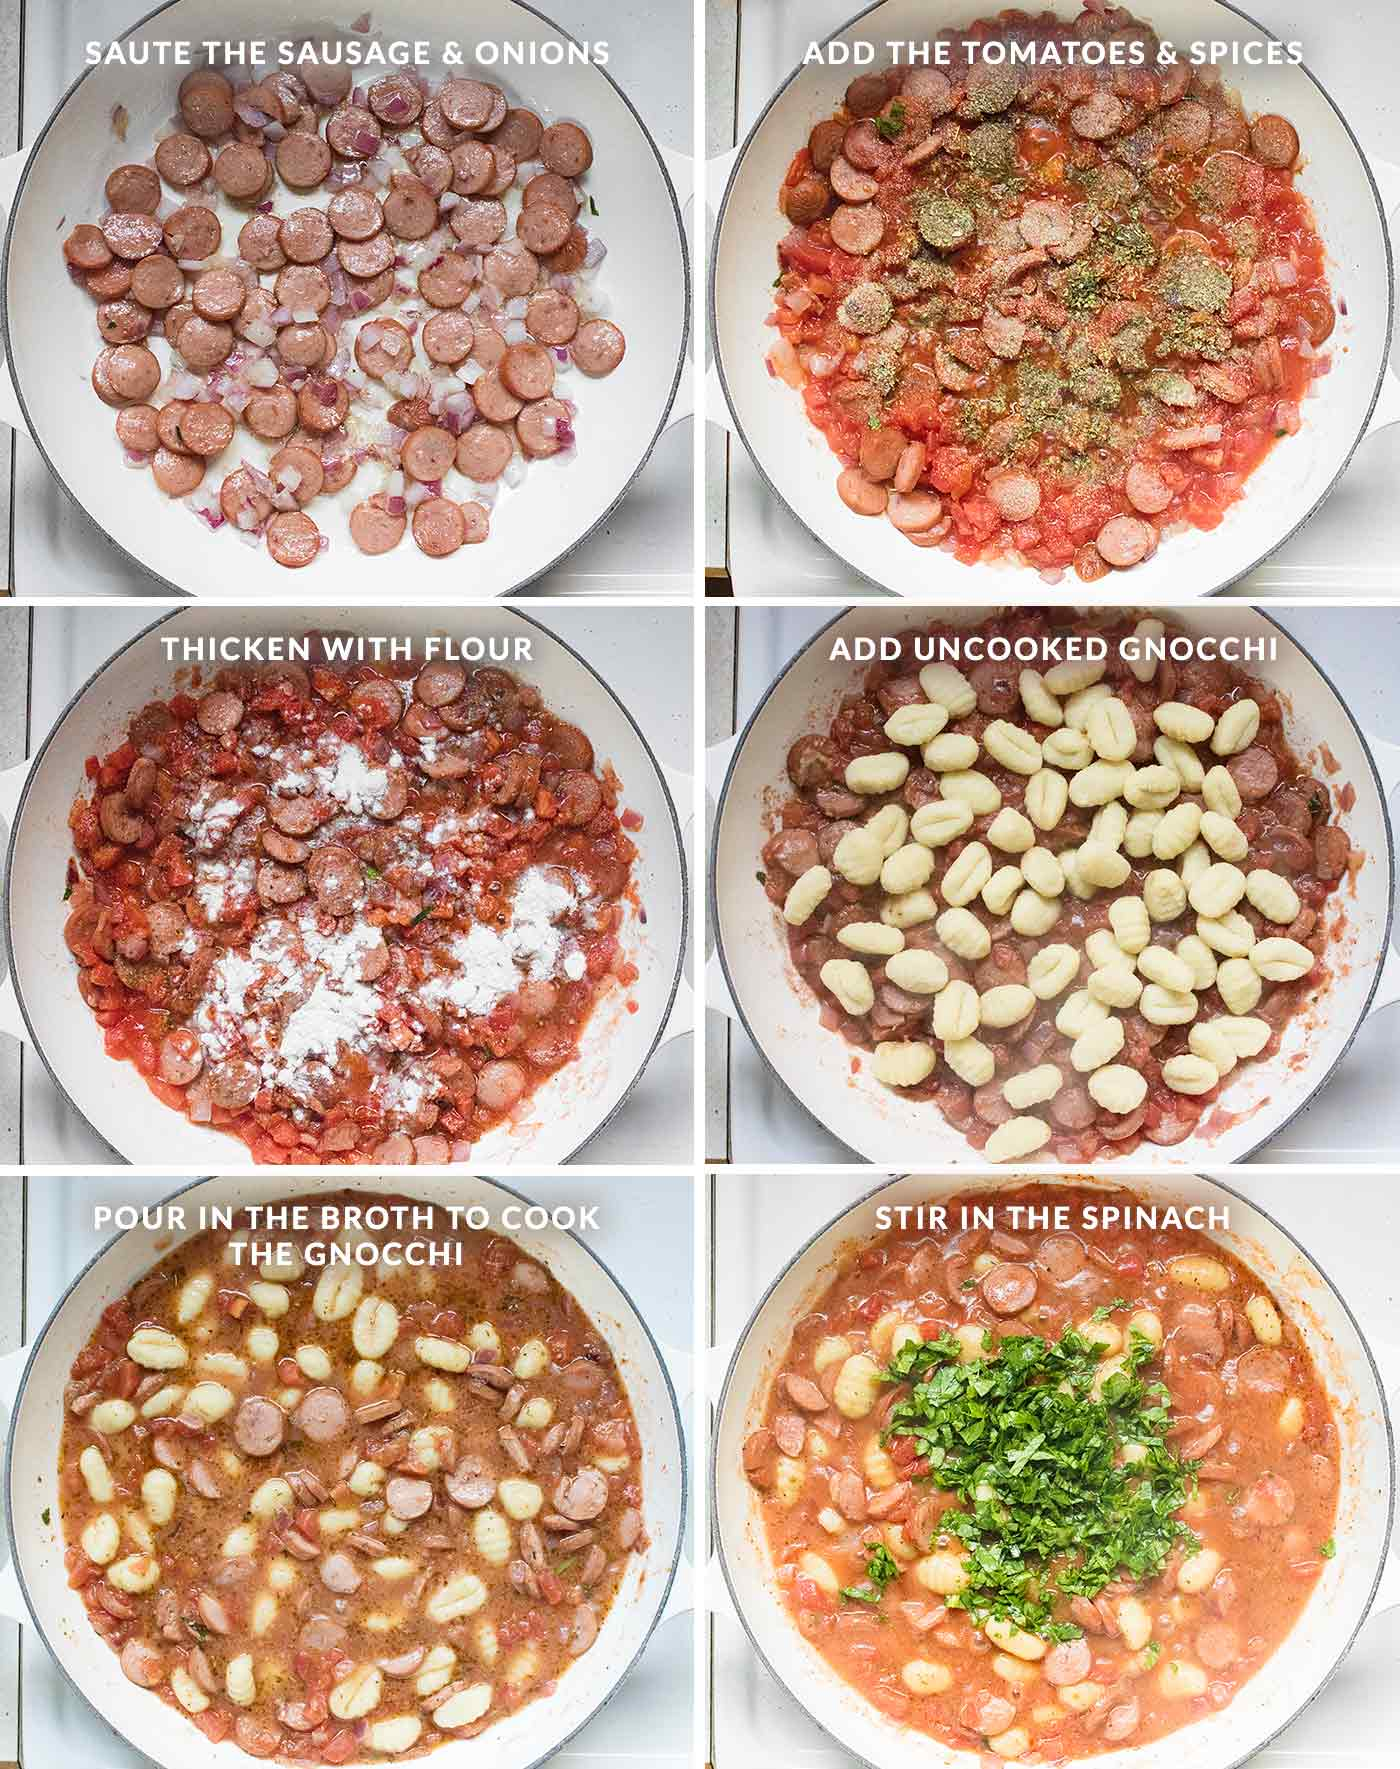 Steps for how to make smoked sausage & gnocchi skillet